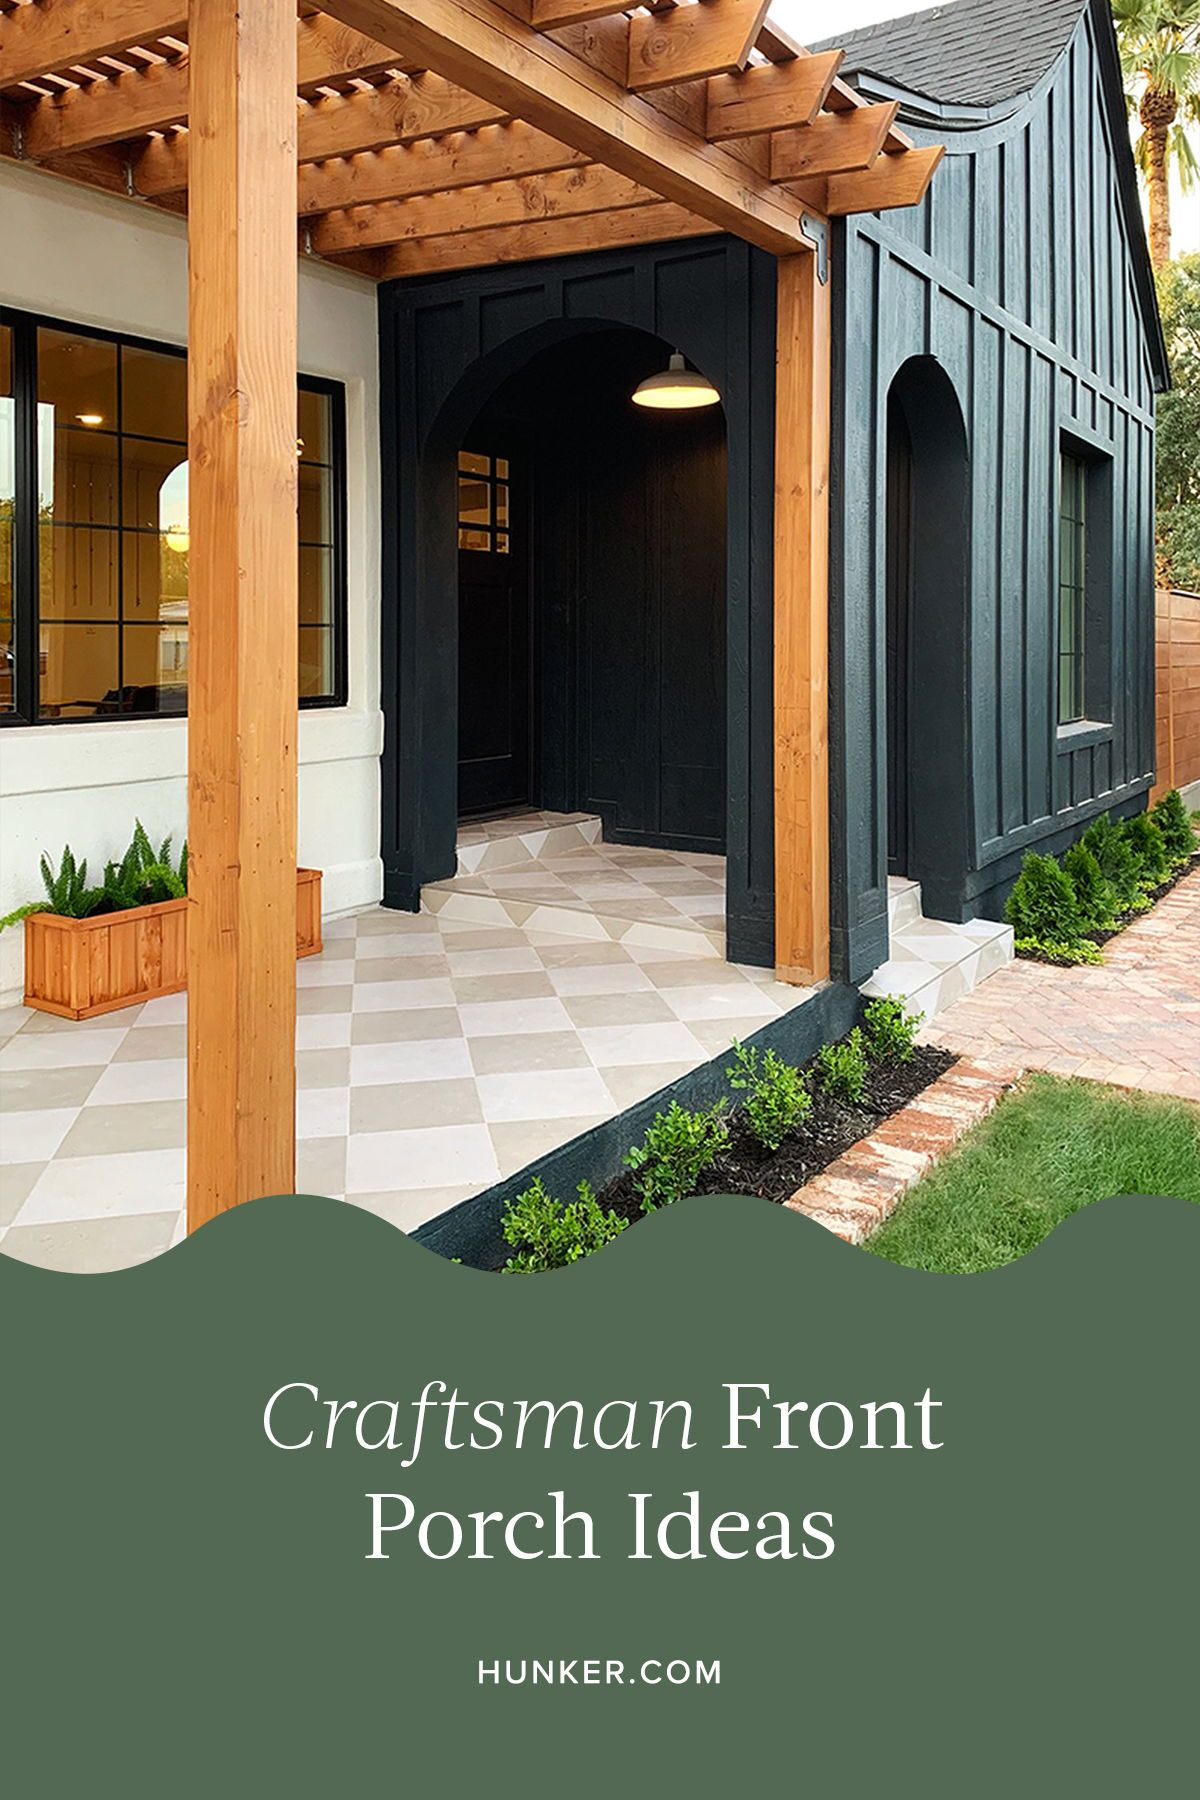 Craftsman-style interiors are certainly classic and beautiful, with their dark woods, stained glass windows, and fireplaces acting as centerpieces. You'll absolutely love these eight Craftsman front porch ideas as much as we do. #hunkerhome #craftsman #frontporch #porchideas #frontporchideas